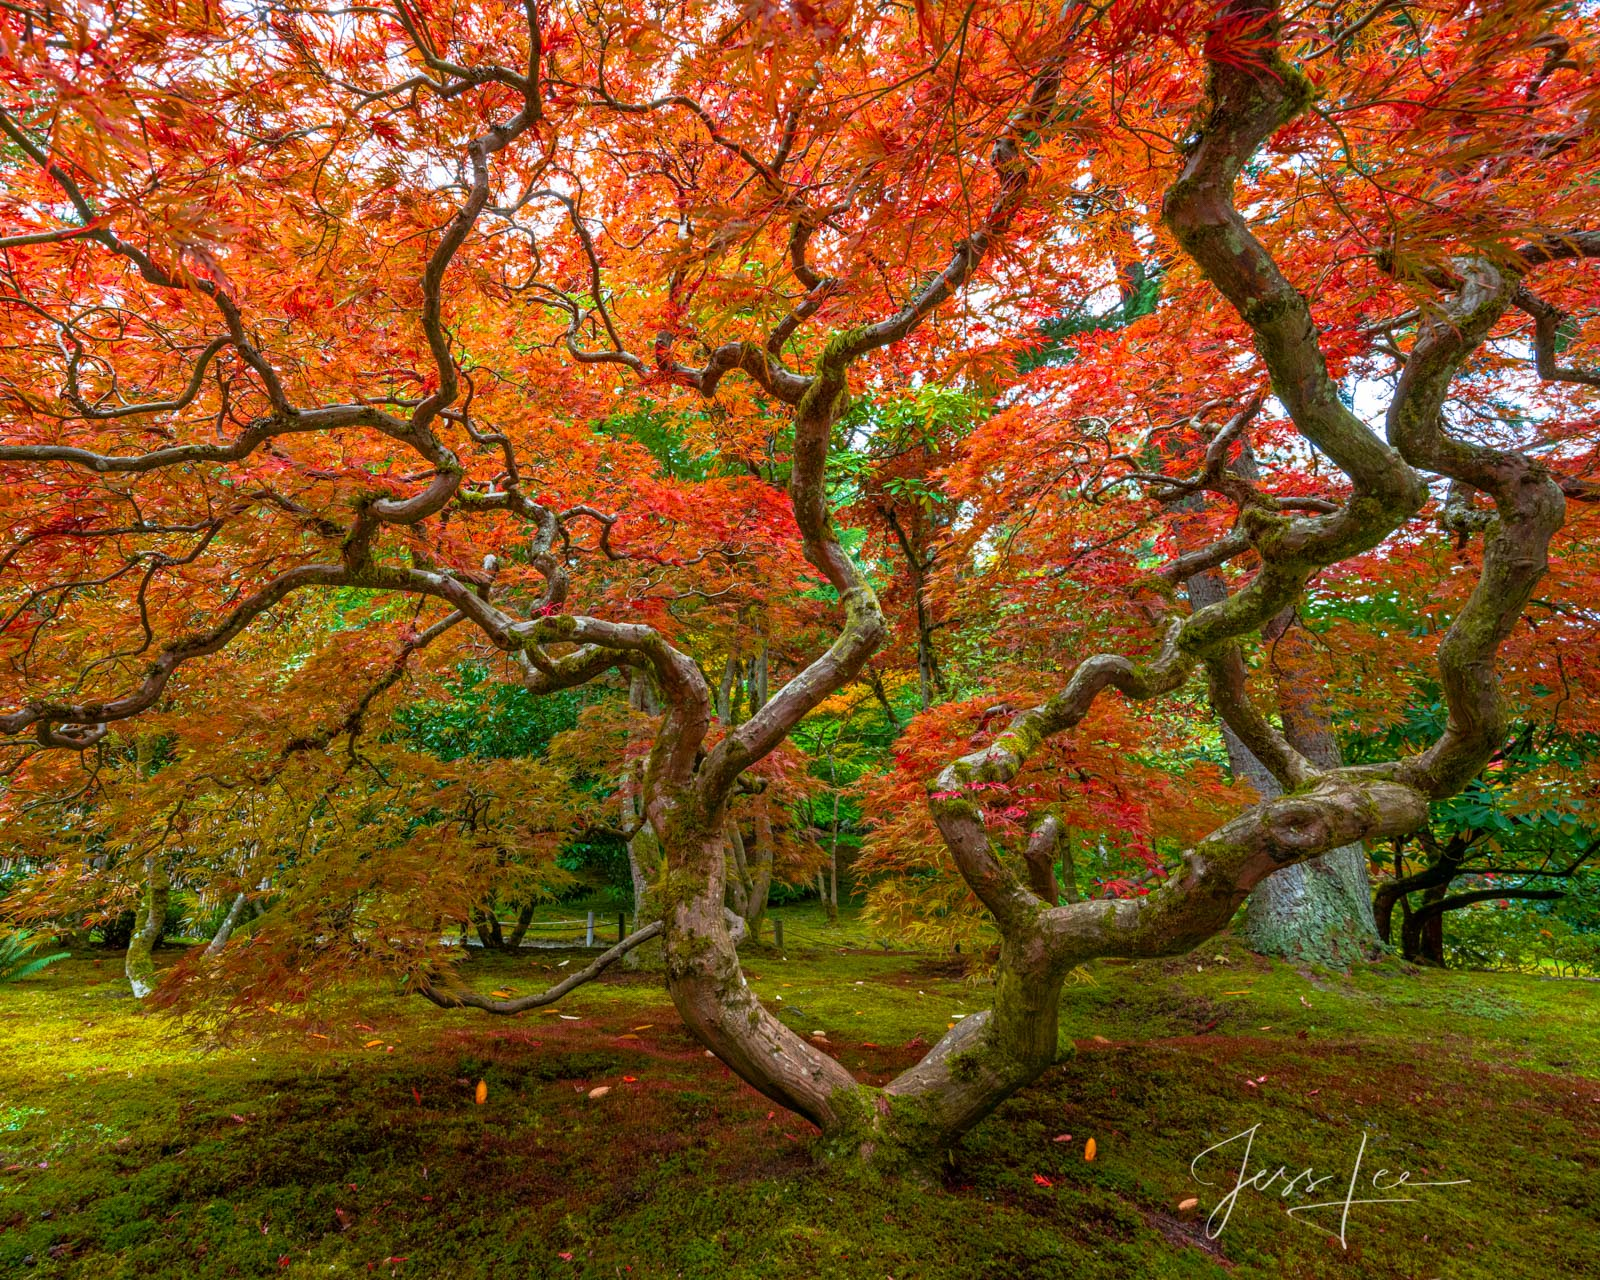 A limited edition fine art photographic print of 50 archival Museum Quality artworks of this beautiful autumn flaming Maple Tree...